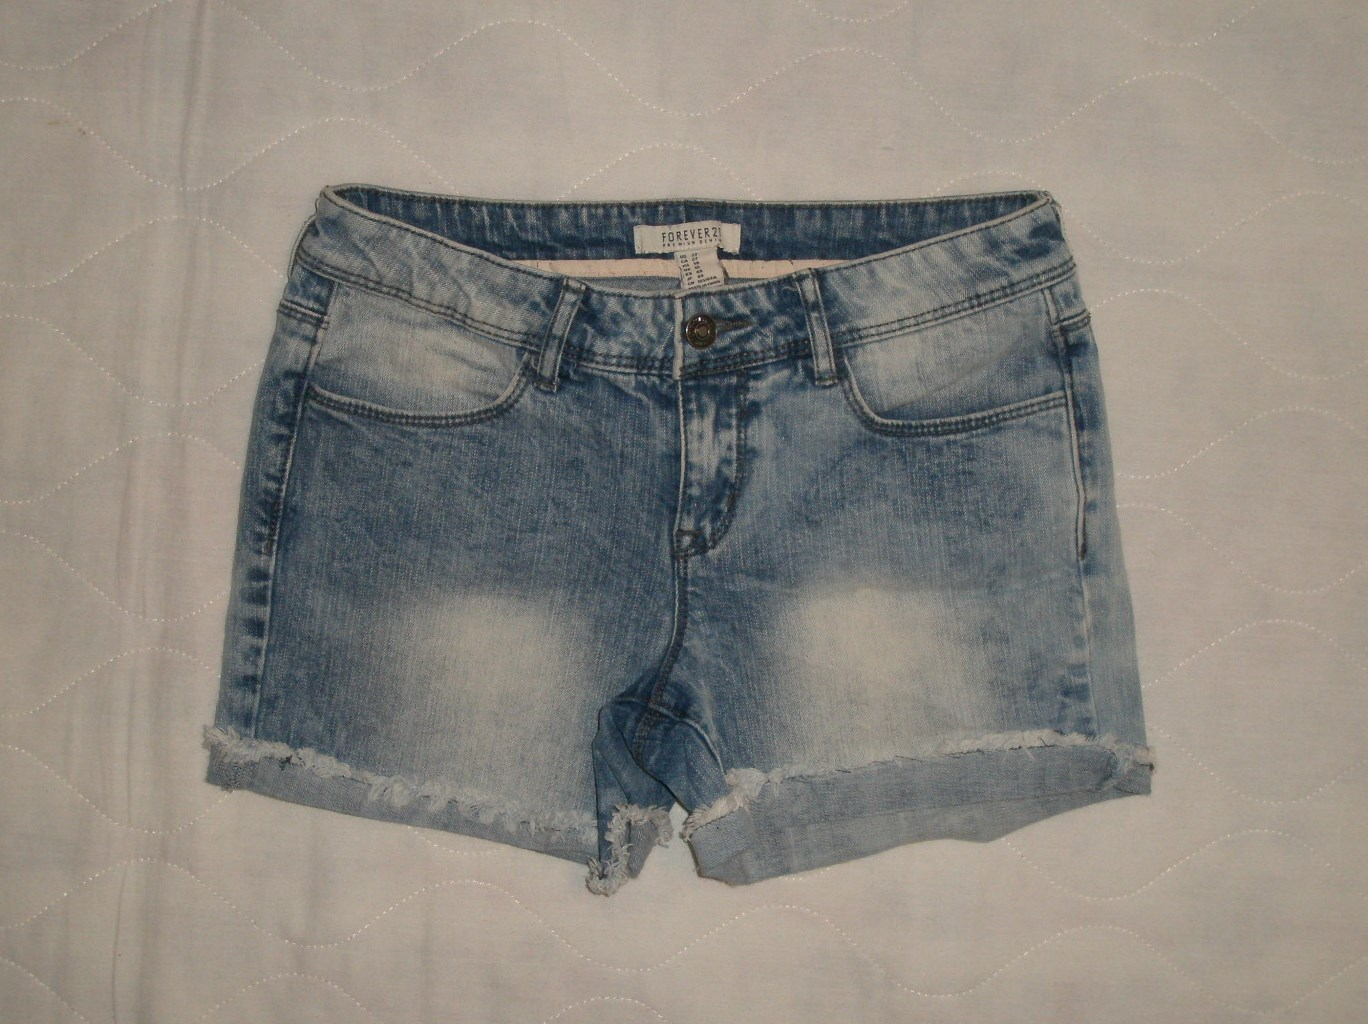 Primary image for Forever 21 Acid Wash Cuffed Frayed Hem Denim Jean Shorts Size 27